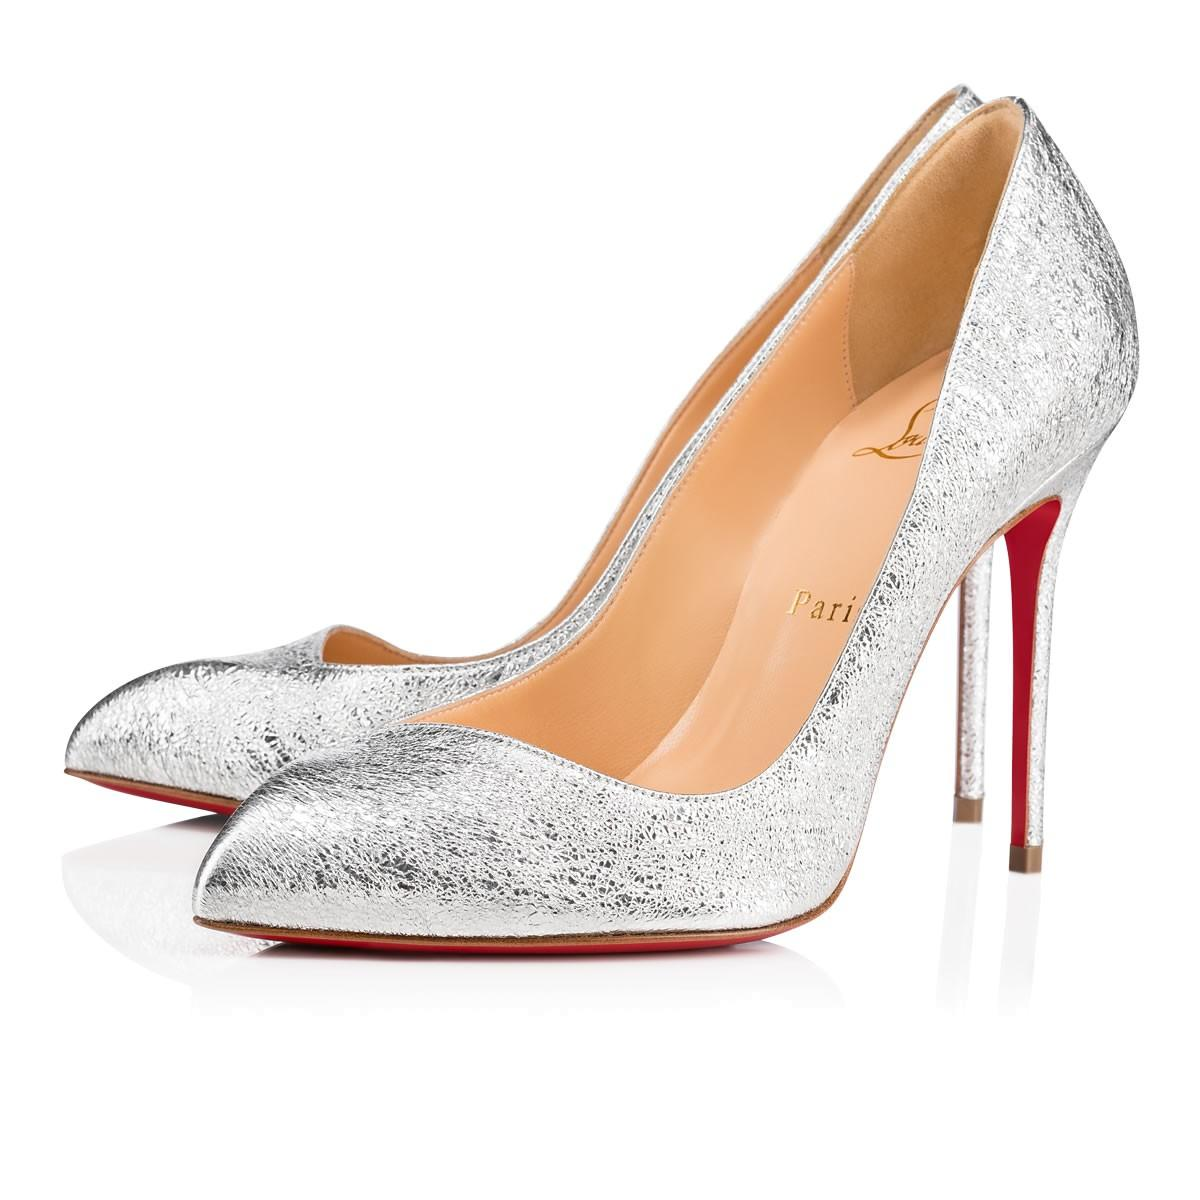 99d98c56ae67 Christian Louboutin Corneille In Silver